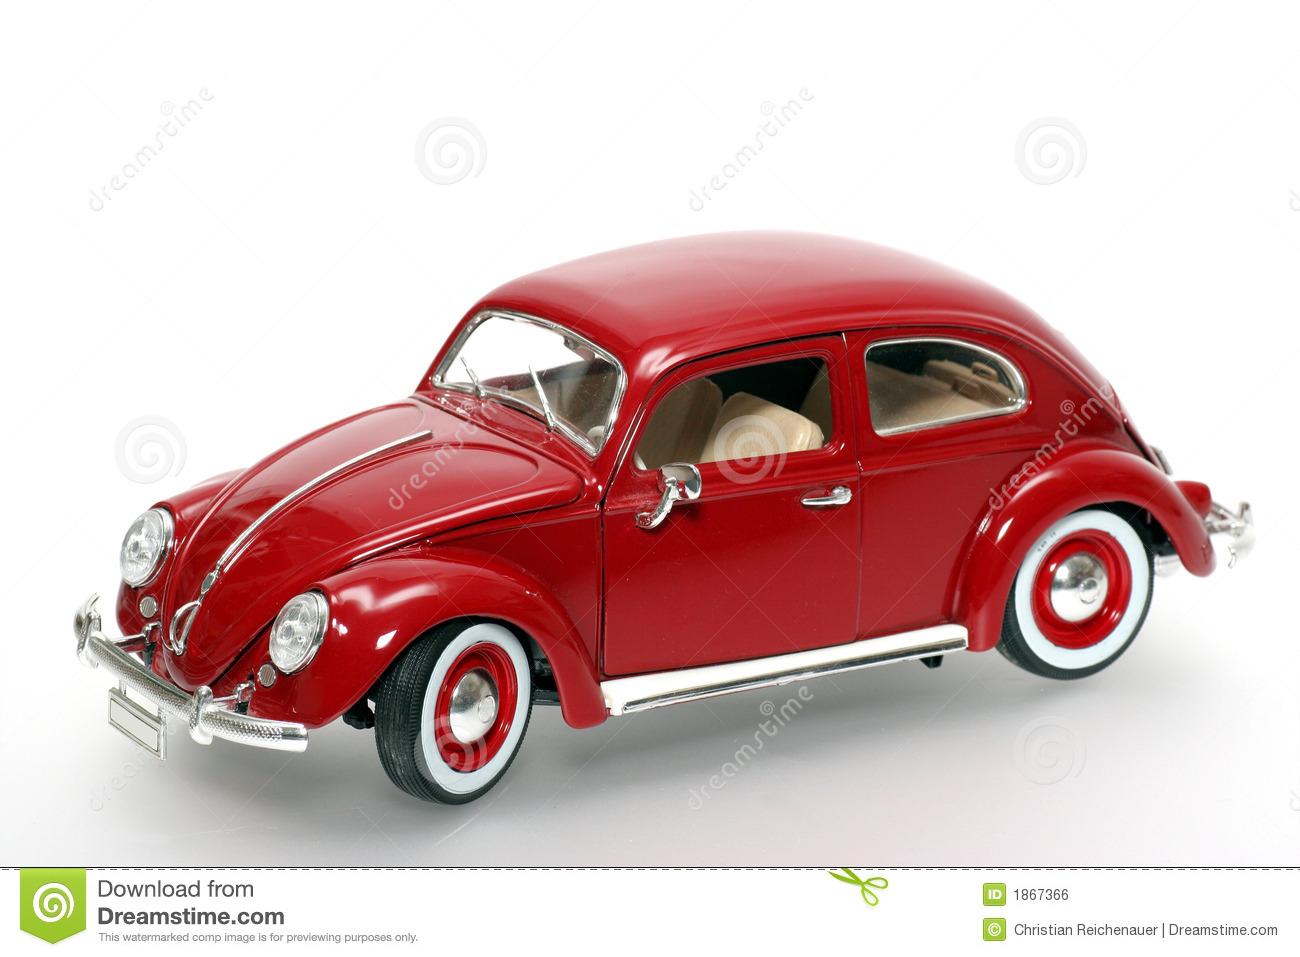 Old Red Volkswagen Toy Car